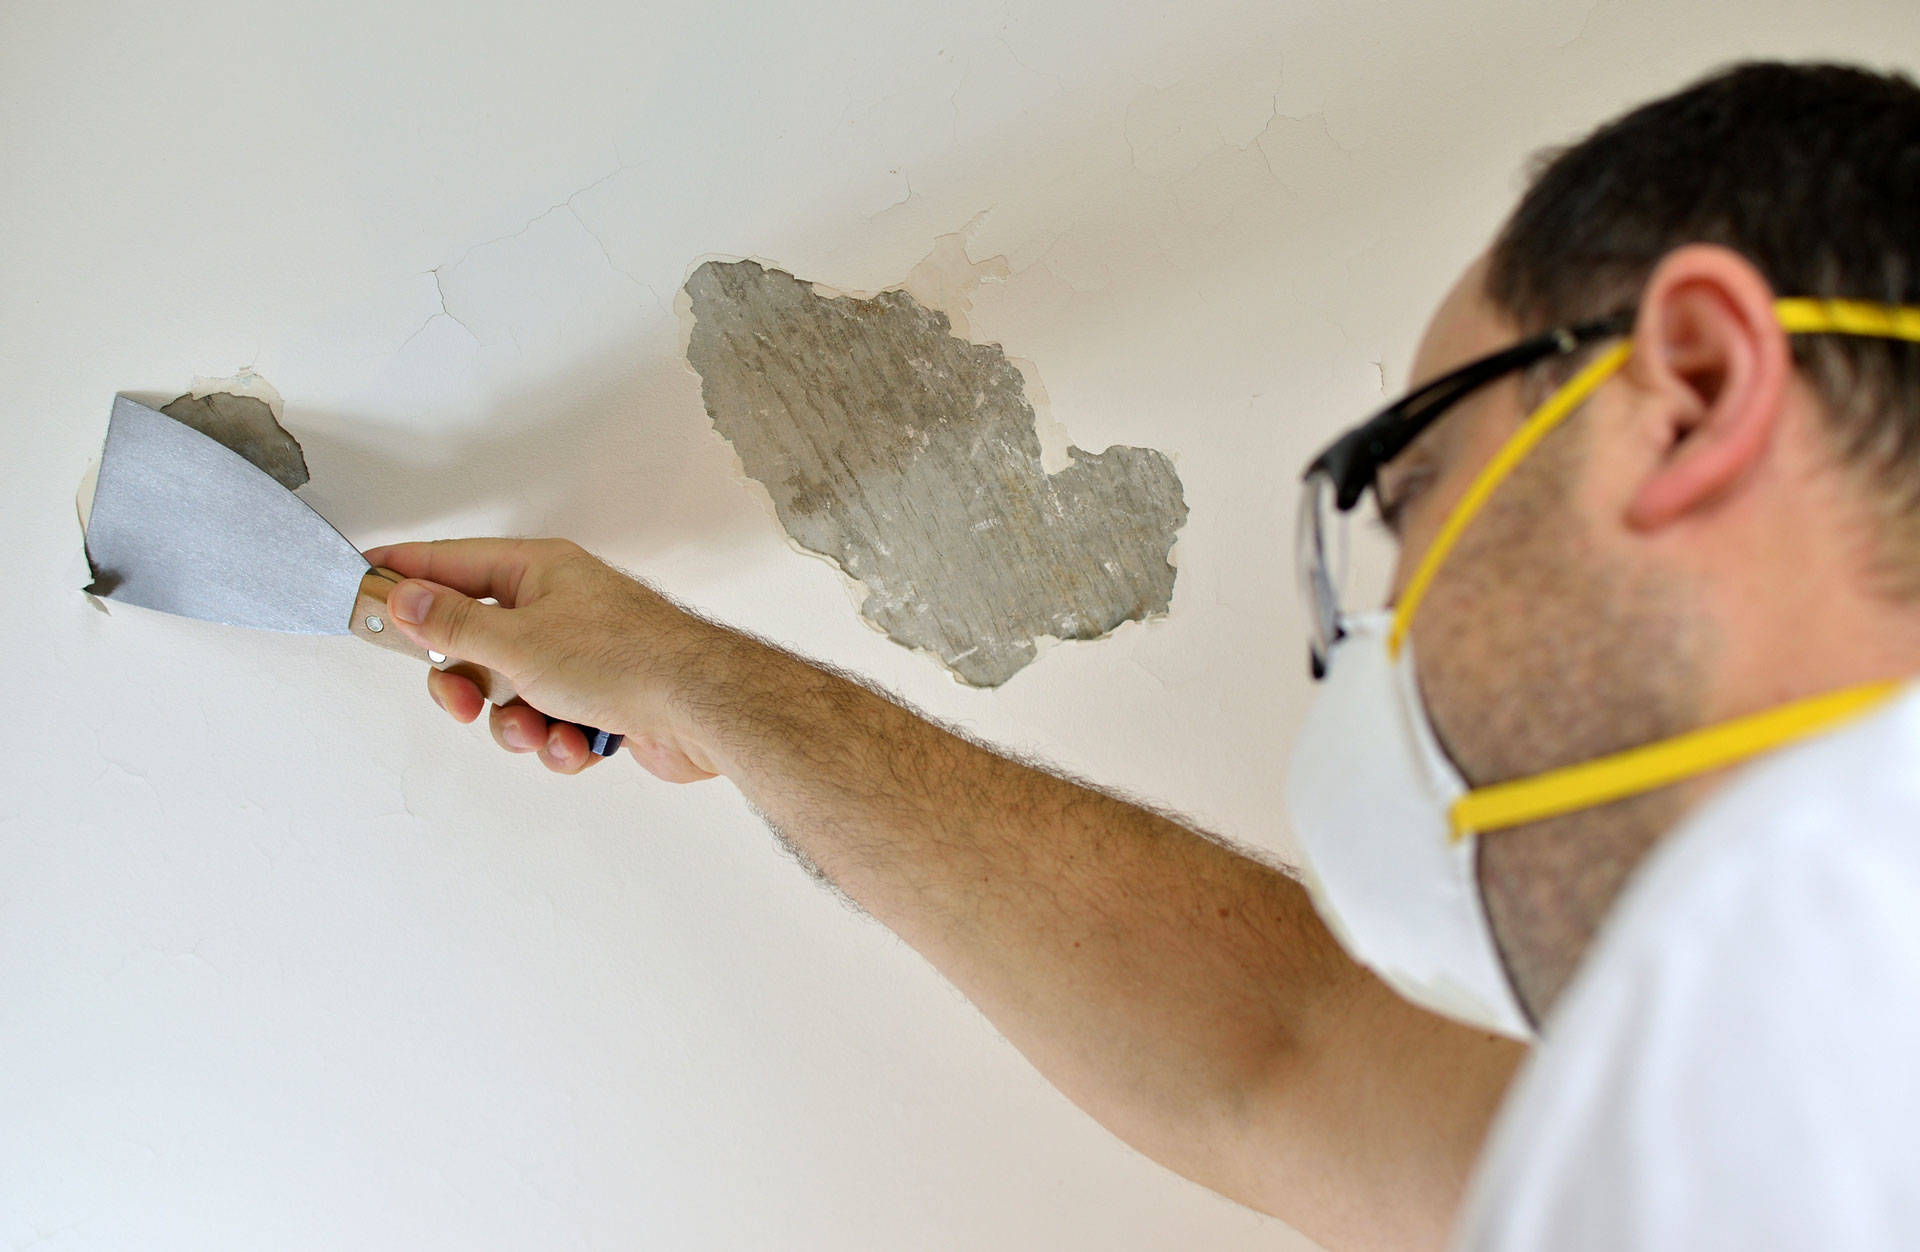 Lead was a common paint ingredient in the early 20th century. Over time scientists found that lead exposure causes brain damage in young children. Getty Images